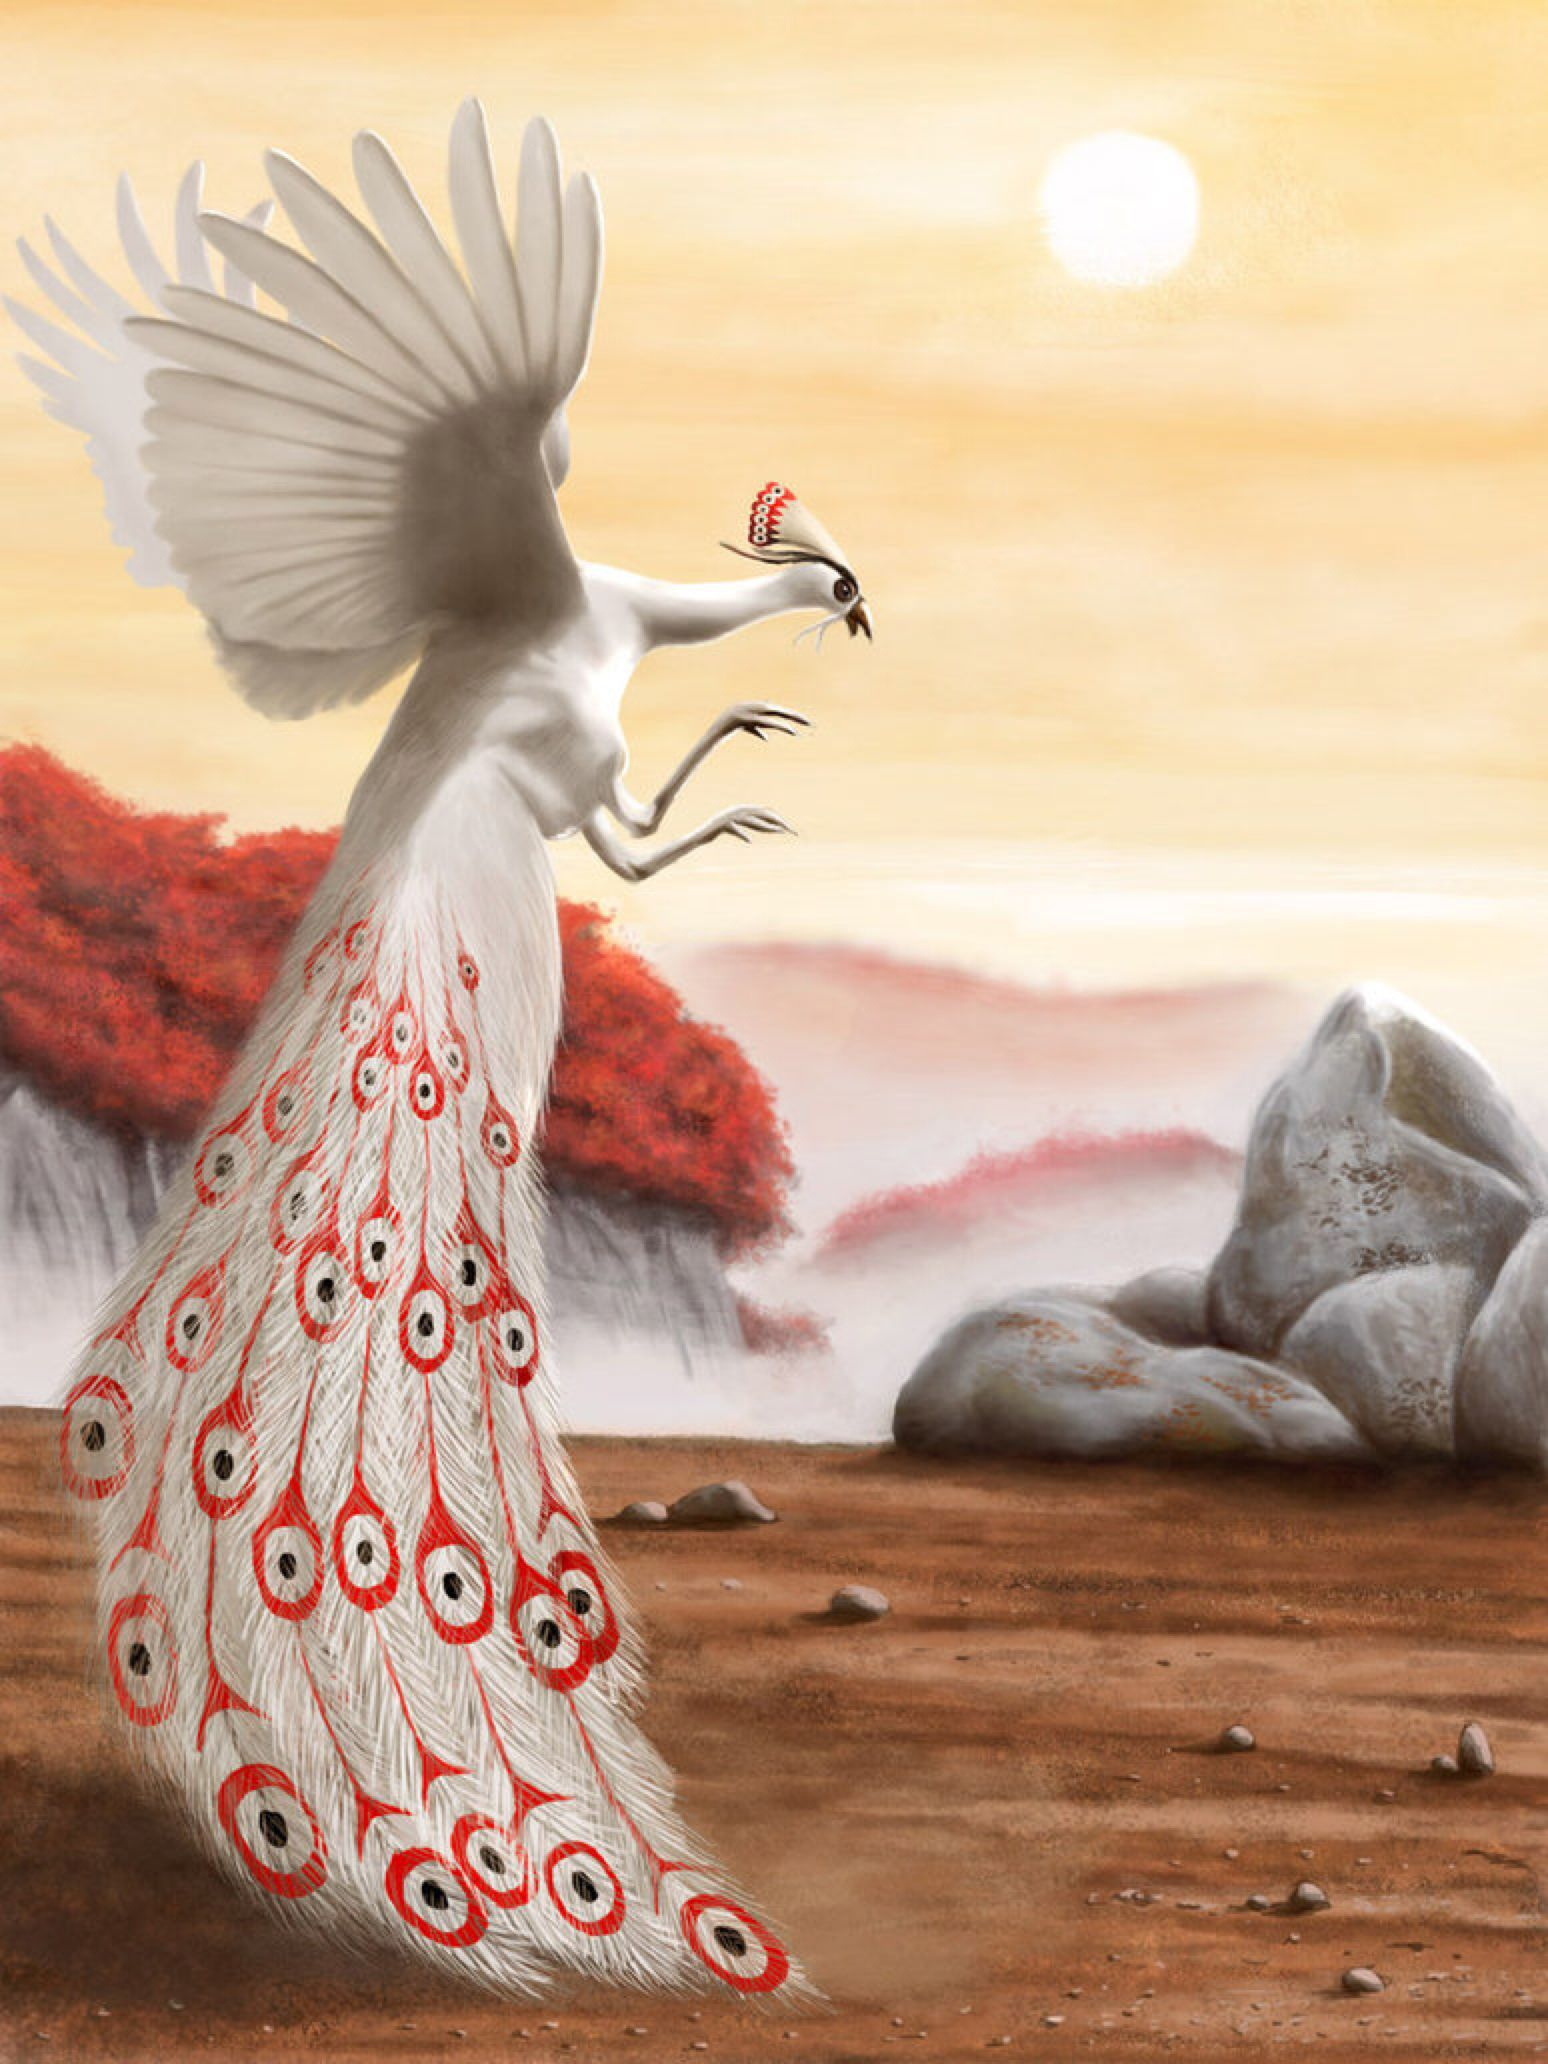 The Kung Fu Peacock By Darefron On Deviantart  Kung Fu -2711